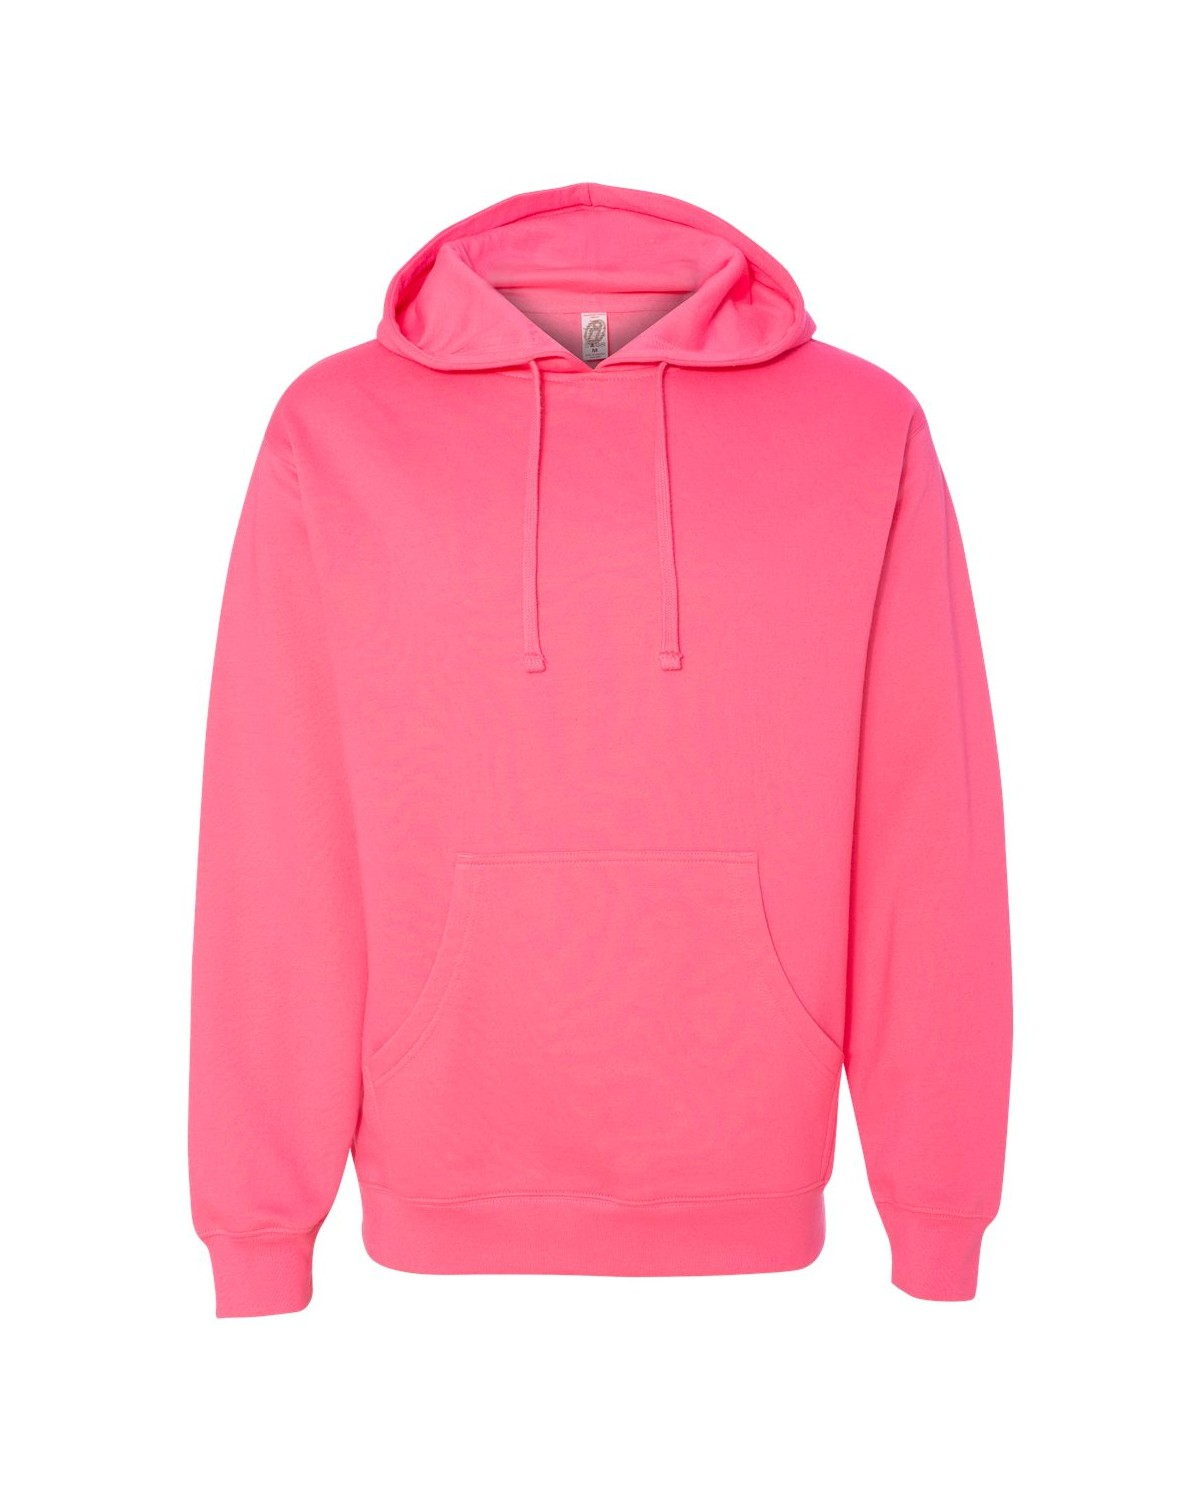 SS4500 Independent Trading Co. NEON PINK